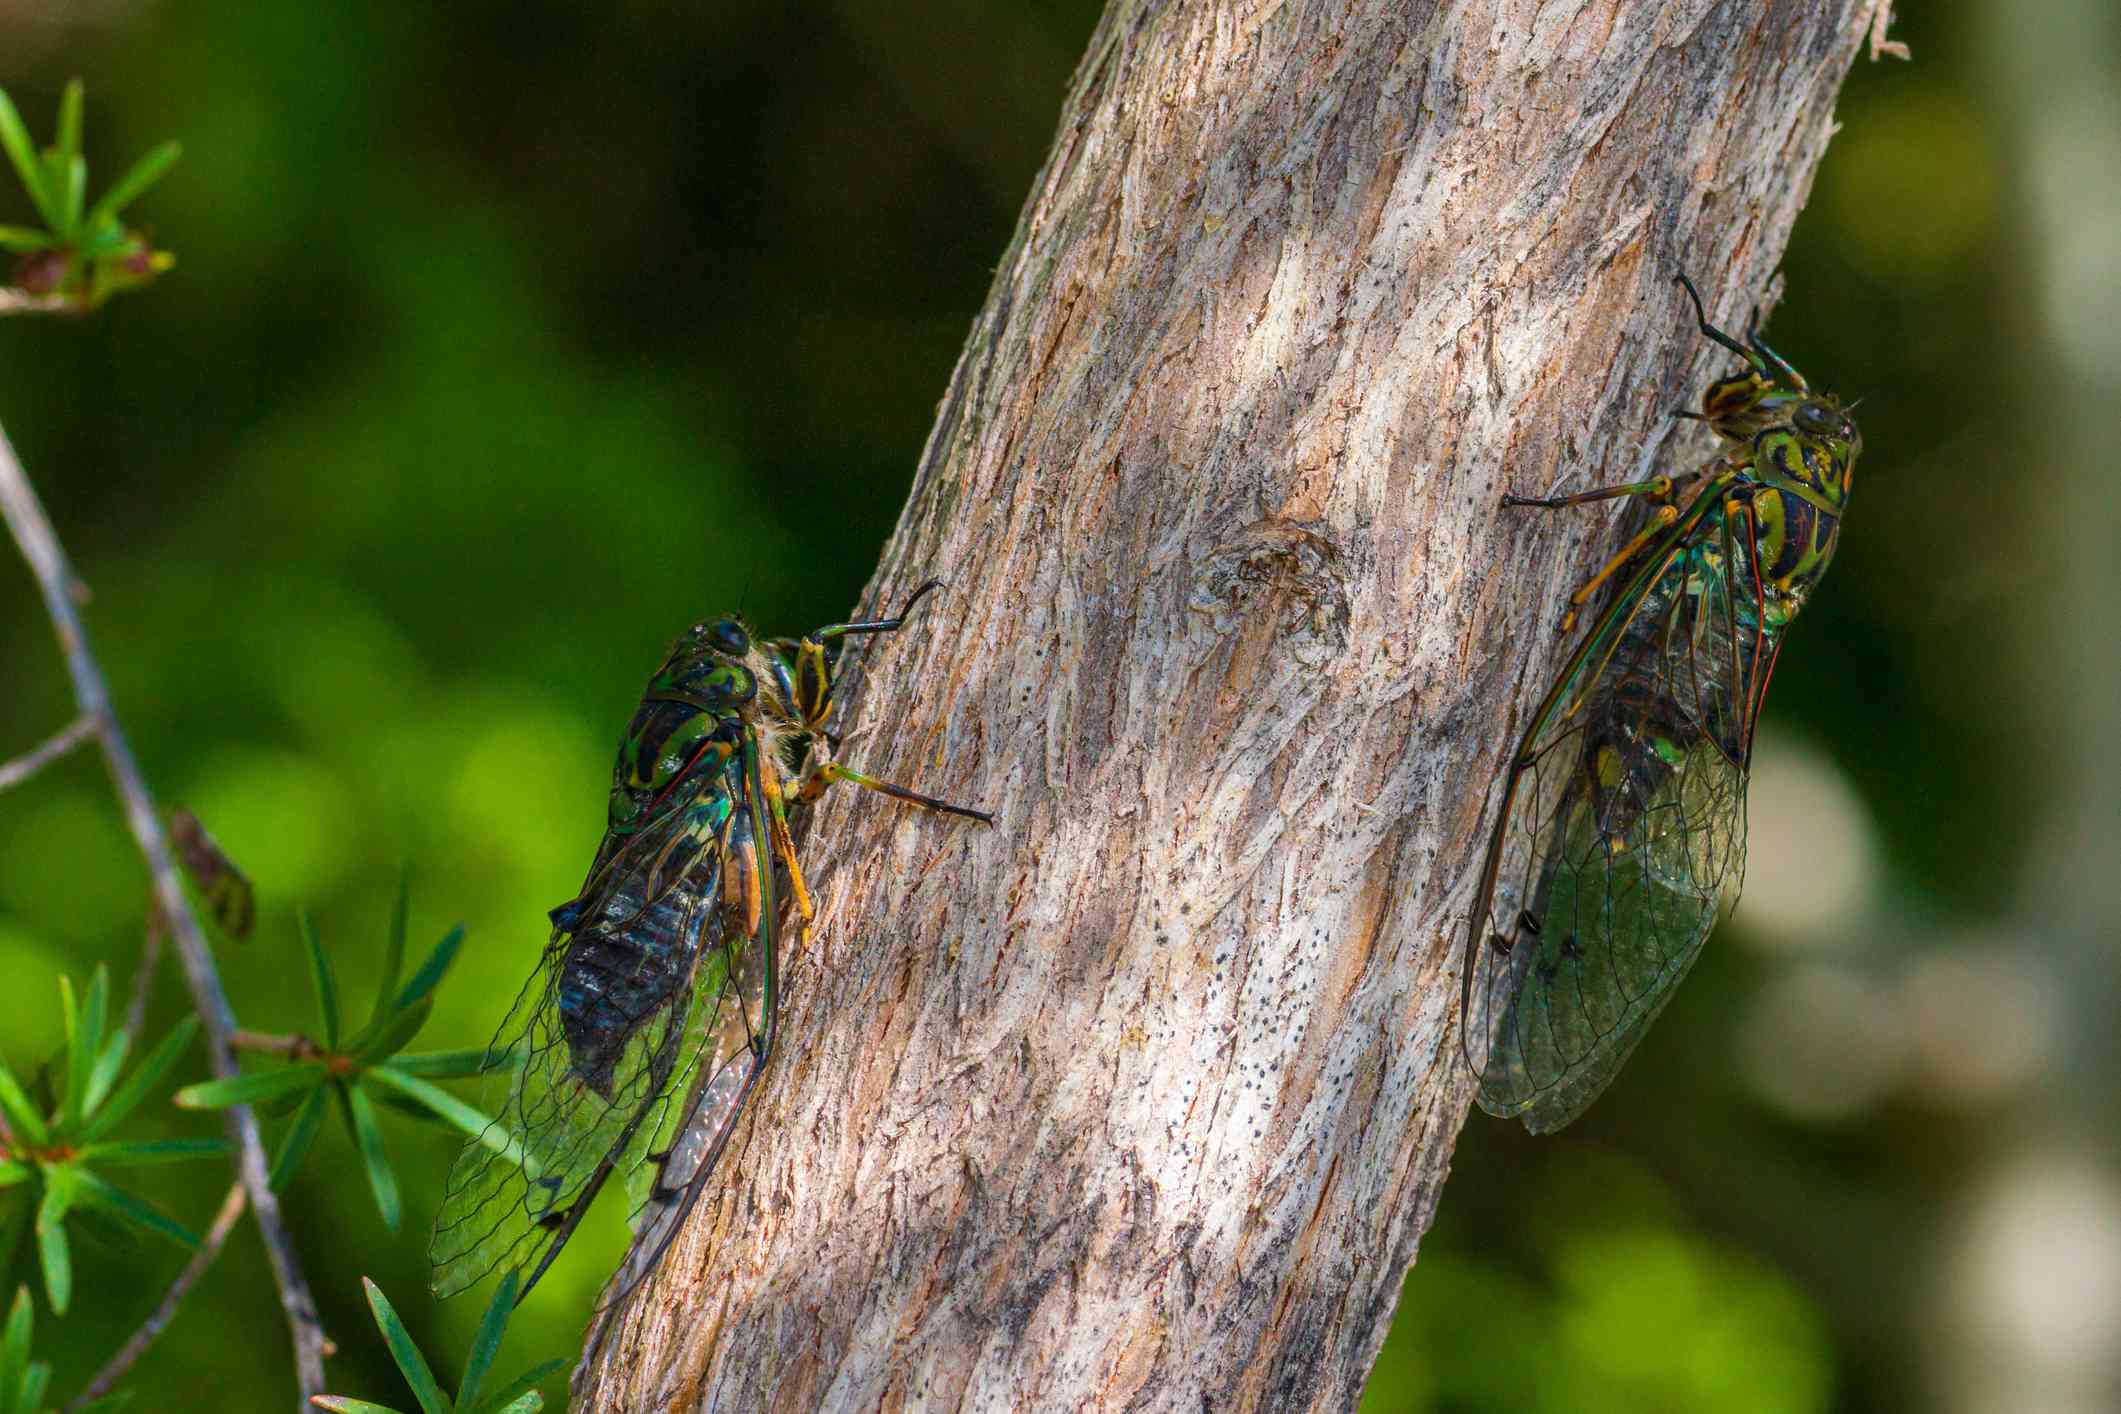 Two cicadas on a tree trunk in New Zealand